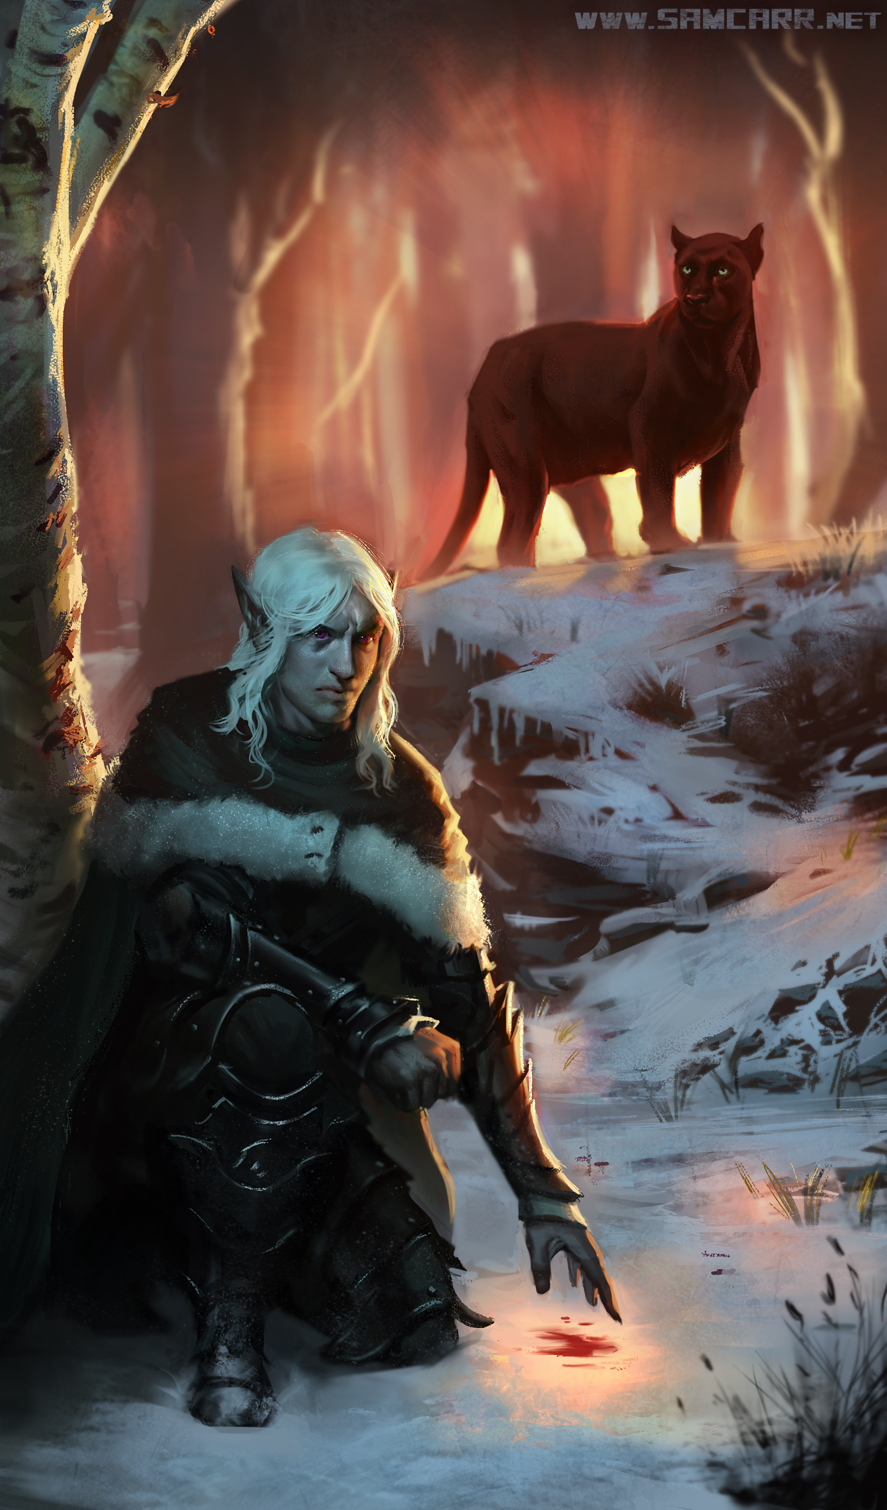 Drizzt-Do-Urden-and-Guenhwyvar-by-SamC-Art-on-deviantART-wallpaper-wp5404670